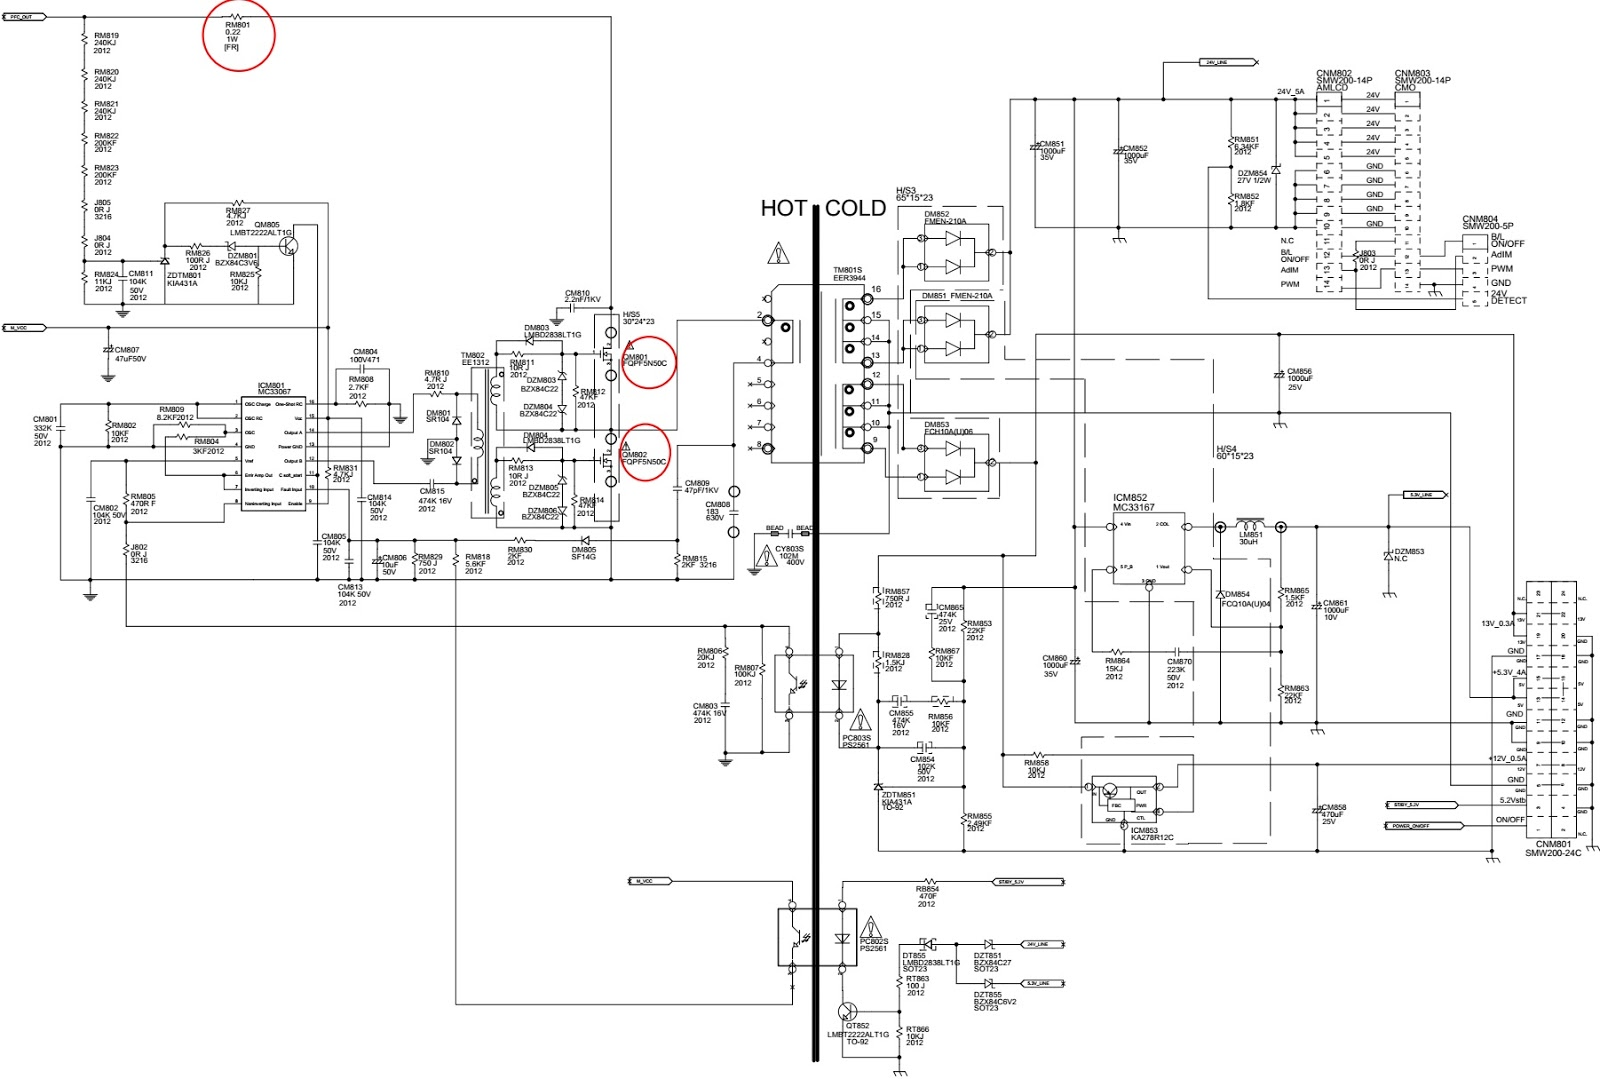 Bn44 00195 Smps Circuit Diagram  U2013 For Samsung Syncmaster